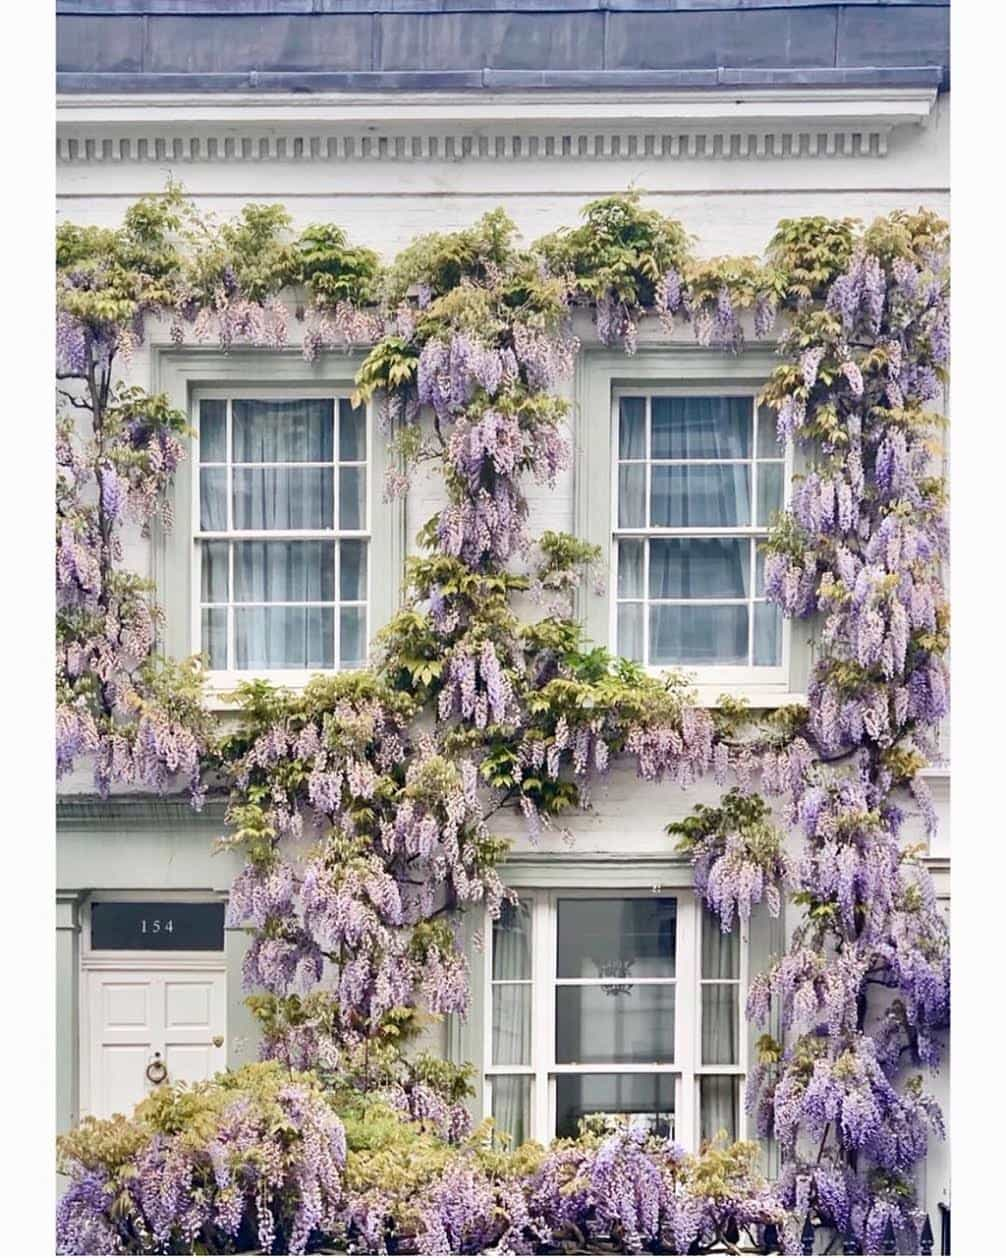 Wisteria climbing on house in London